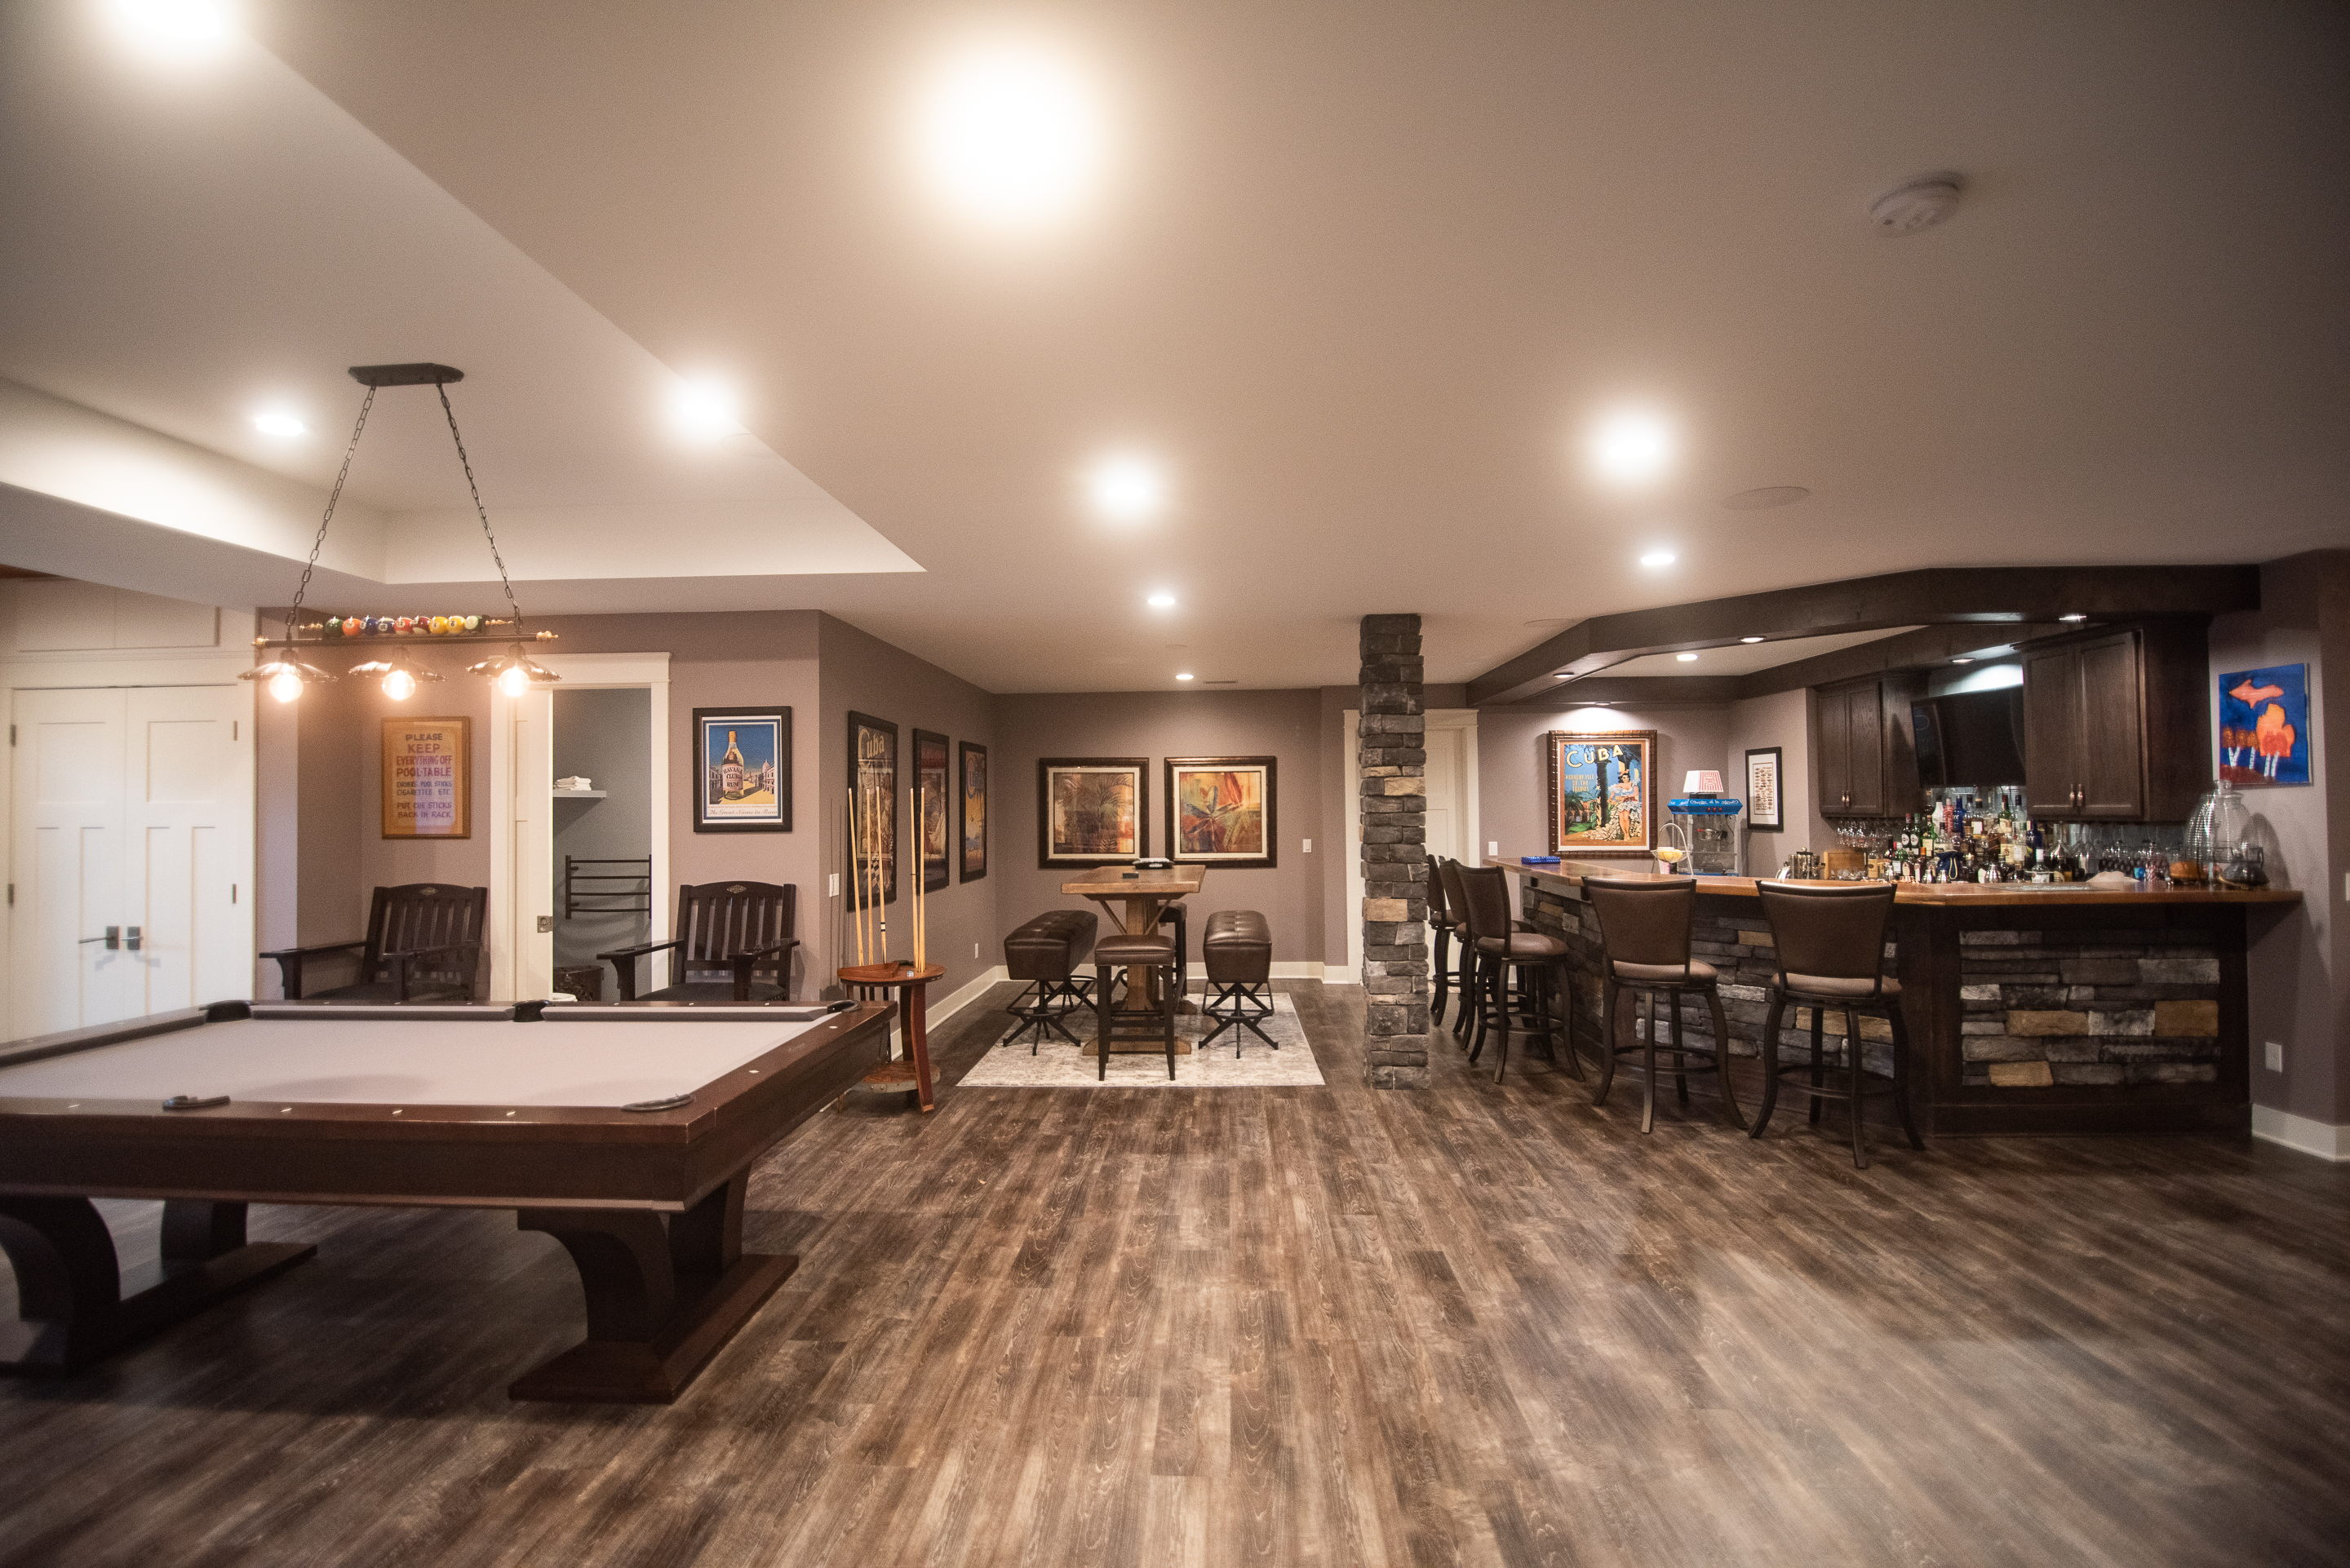 finished basement with open space vinyl plank flooring and brown tones